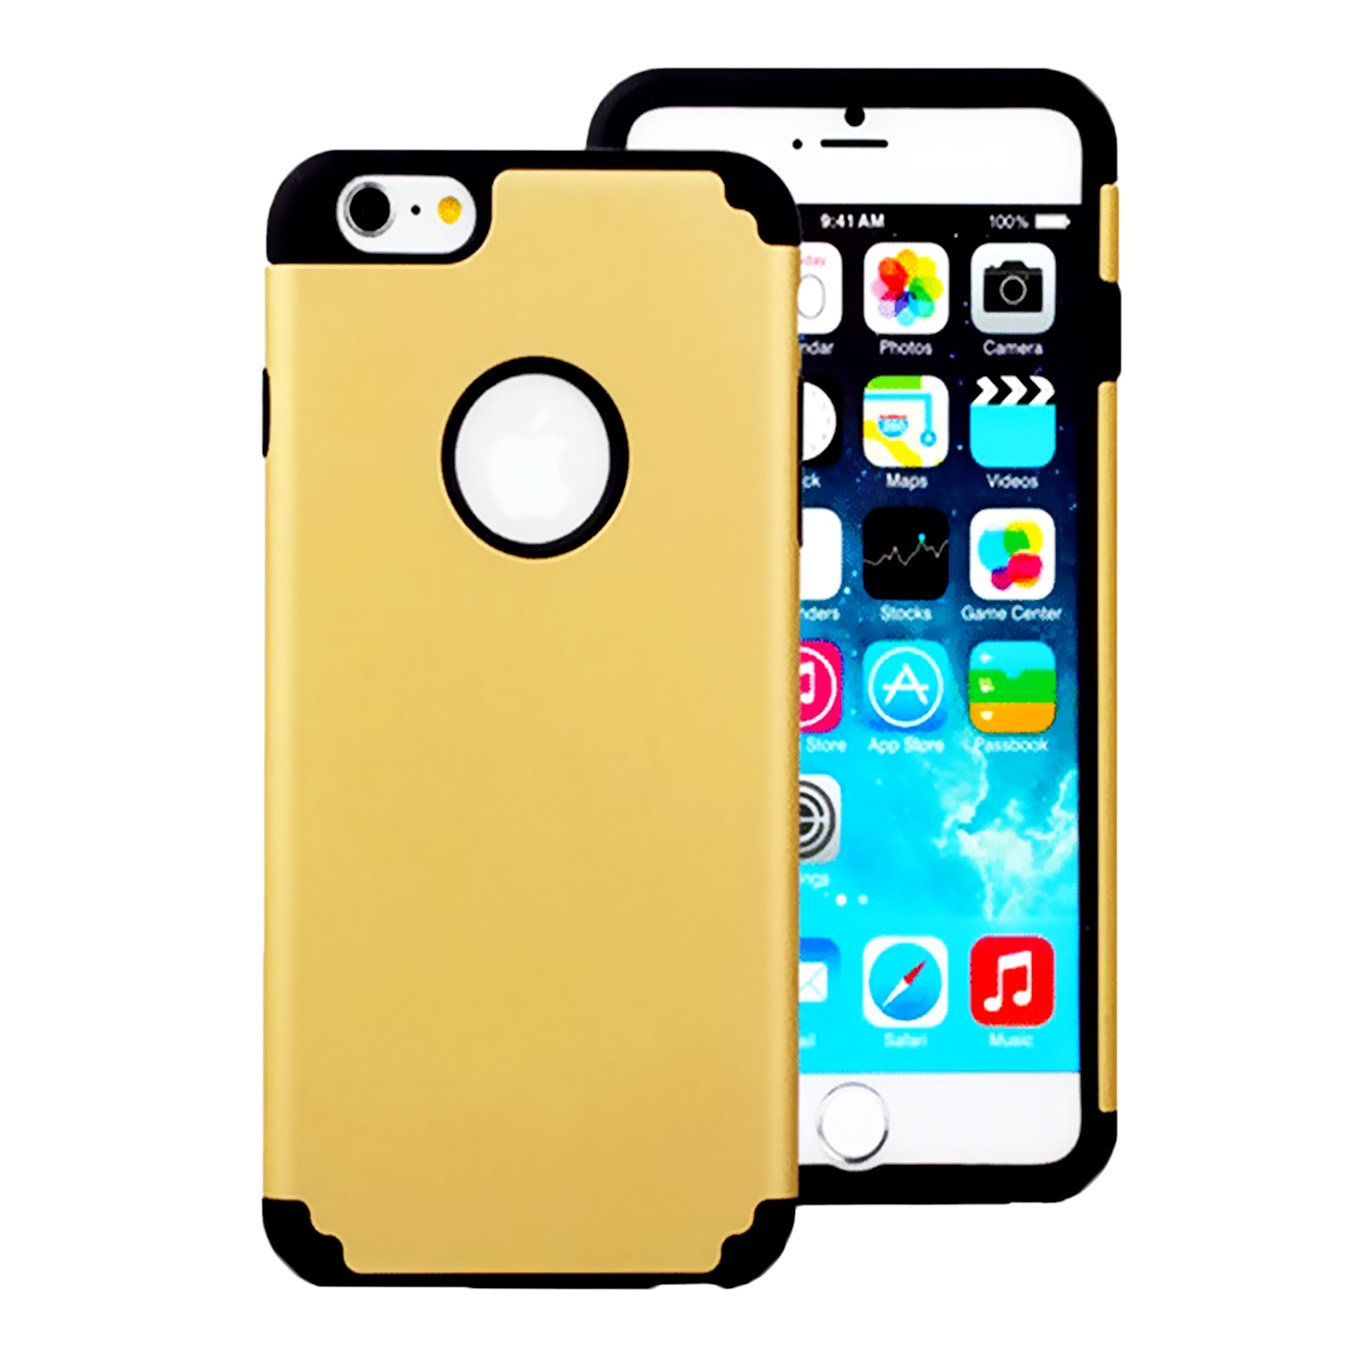 iPhone 6 Plus/6S Plus Case, iEugen Heavy Duty Slim Fit Shockproof 2 in 1 Hybrid Hard PC & Soft Rubber TPU Case for iPhone 6 Plus/6S Plus (5.5